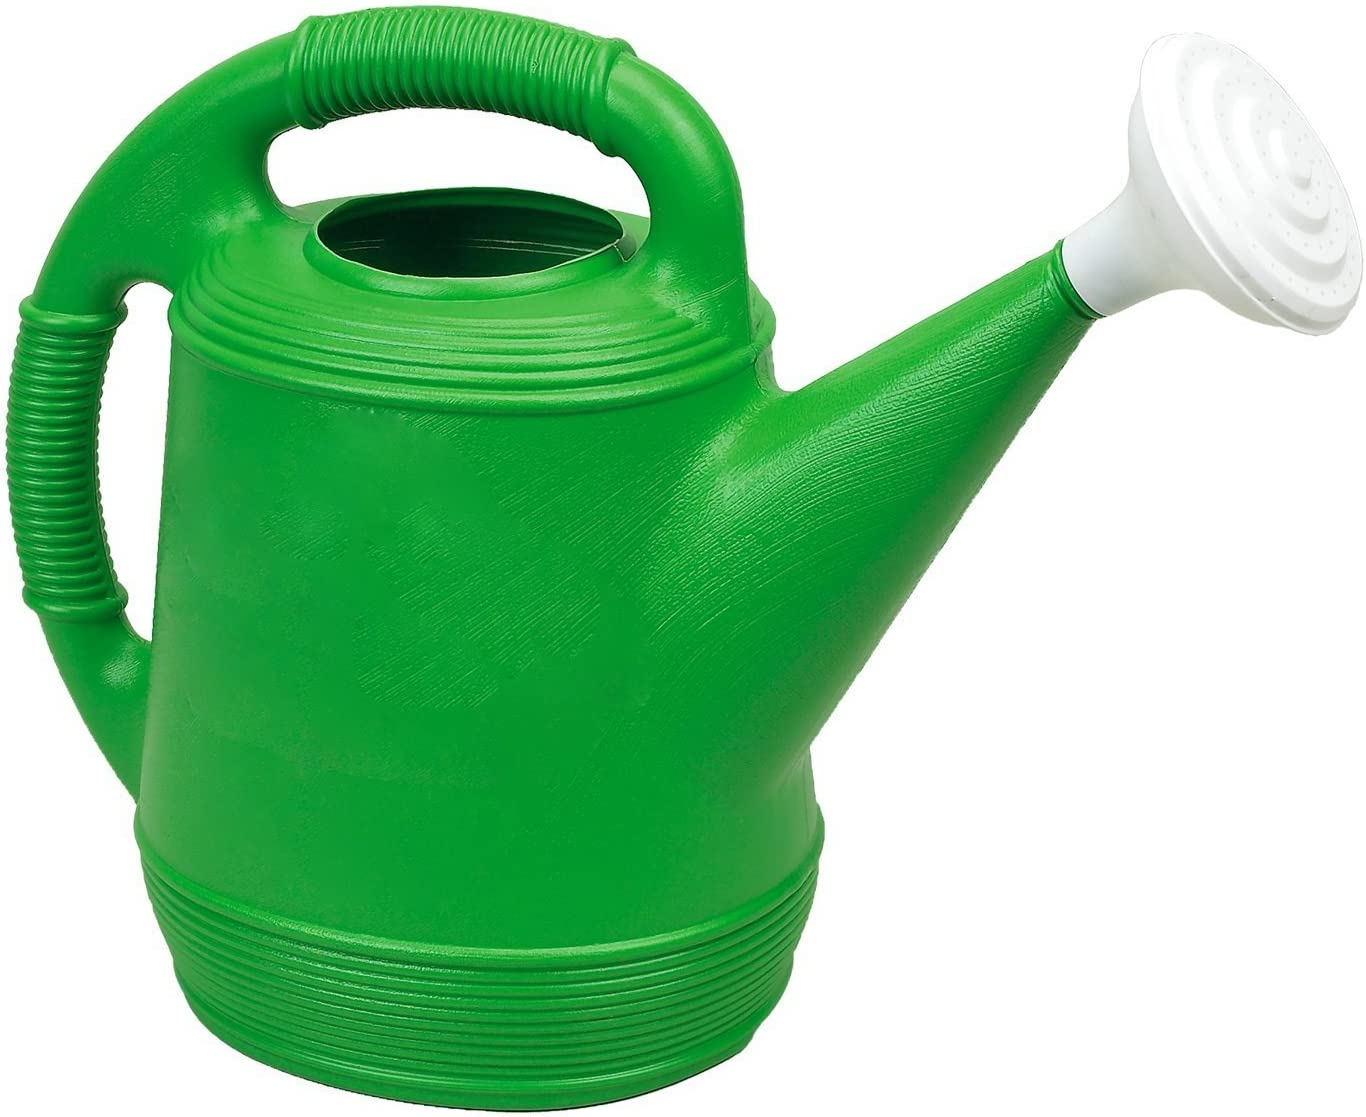 Missry Associates Misco Plastic Watering Can, 2-Gallon, Lime Green : Garden & Outdoor